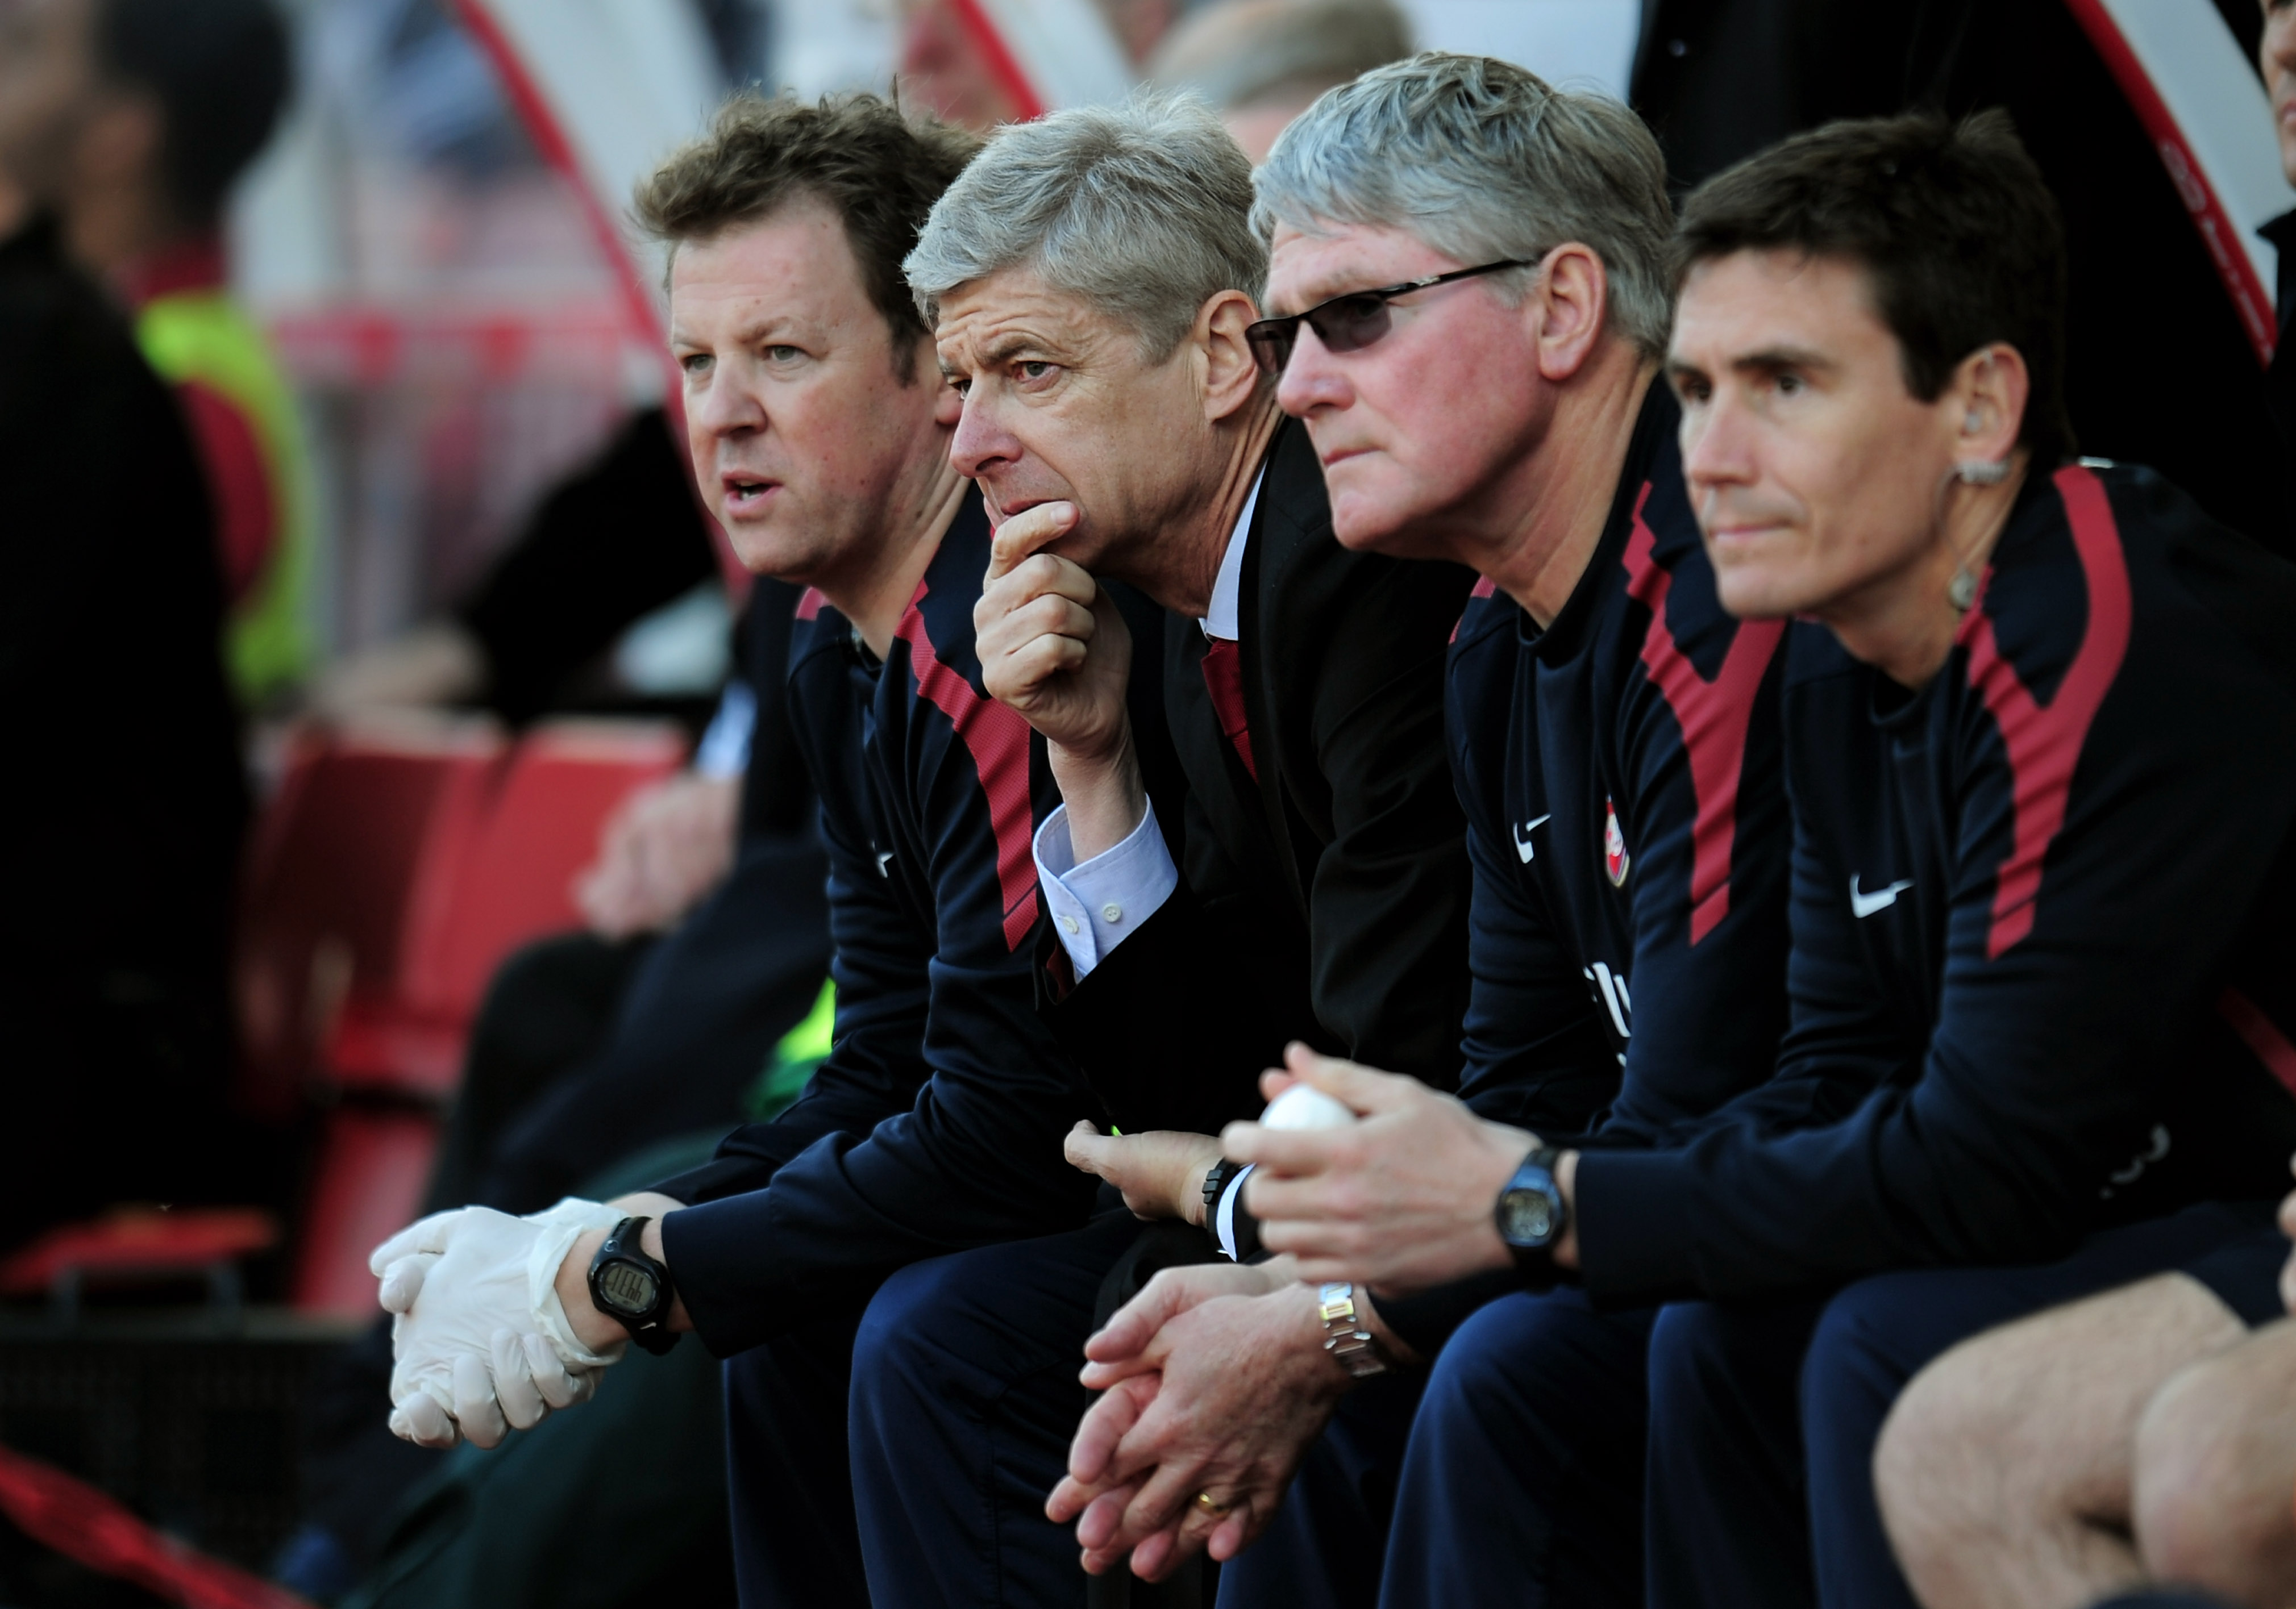 STOKE ON TRENT, ENGLAND - MAY 08:  A dejected Arsene Wenger (2nd L) the Arsenal manager looks on as his team head towards a 3-1 defeat during the Barclays Premier League match between Stoke City and Arsenal at the Britannia Stadium on May 8, 2011 in Stoke